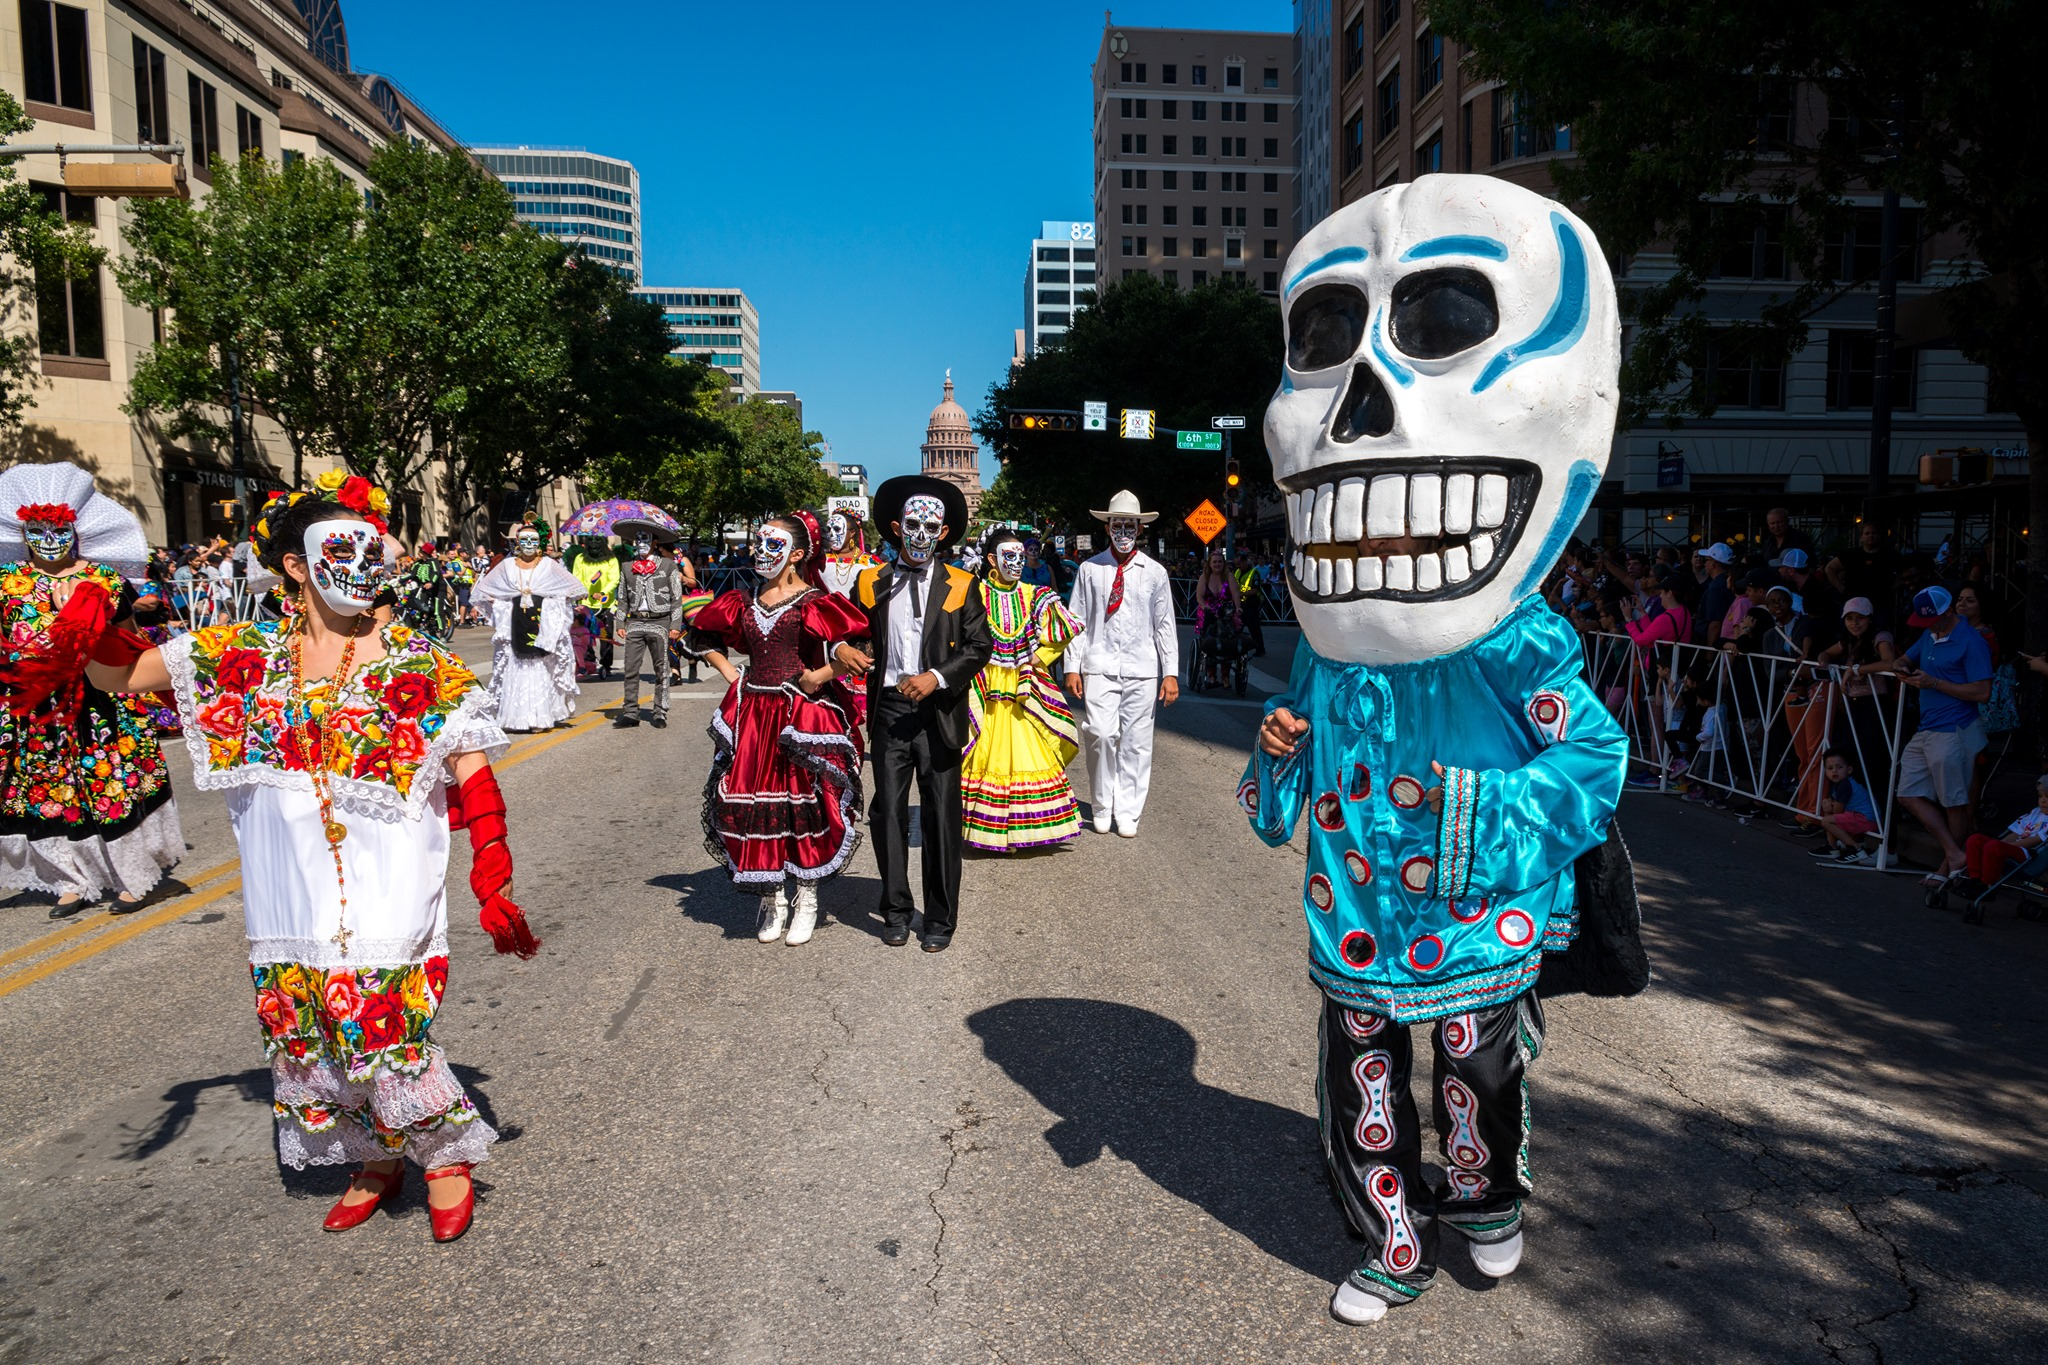 A city street with people dressed in traditional clothing for Dias de los Muertos, including people with their faces painted as skeletons and wearing wedding dresses and suits. One person has on an oversized skeleton puppet head.